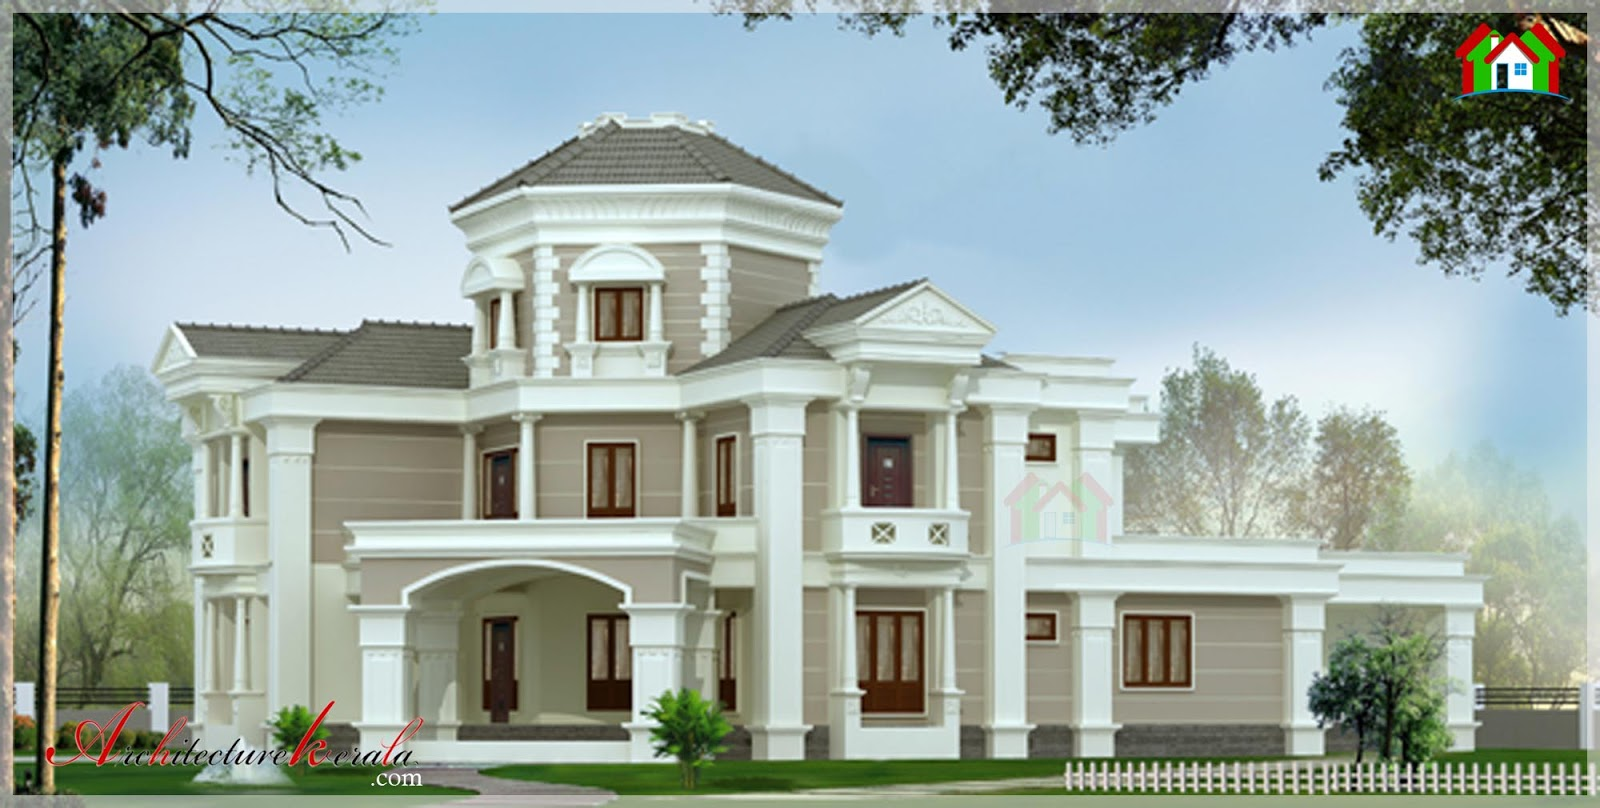 5000 square feet contemporary style elevation for Modern house plans 5000 square feet